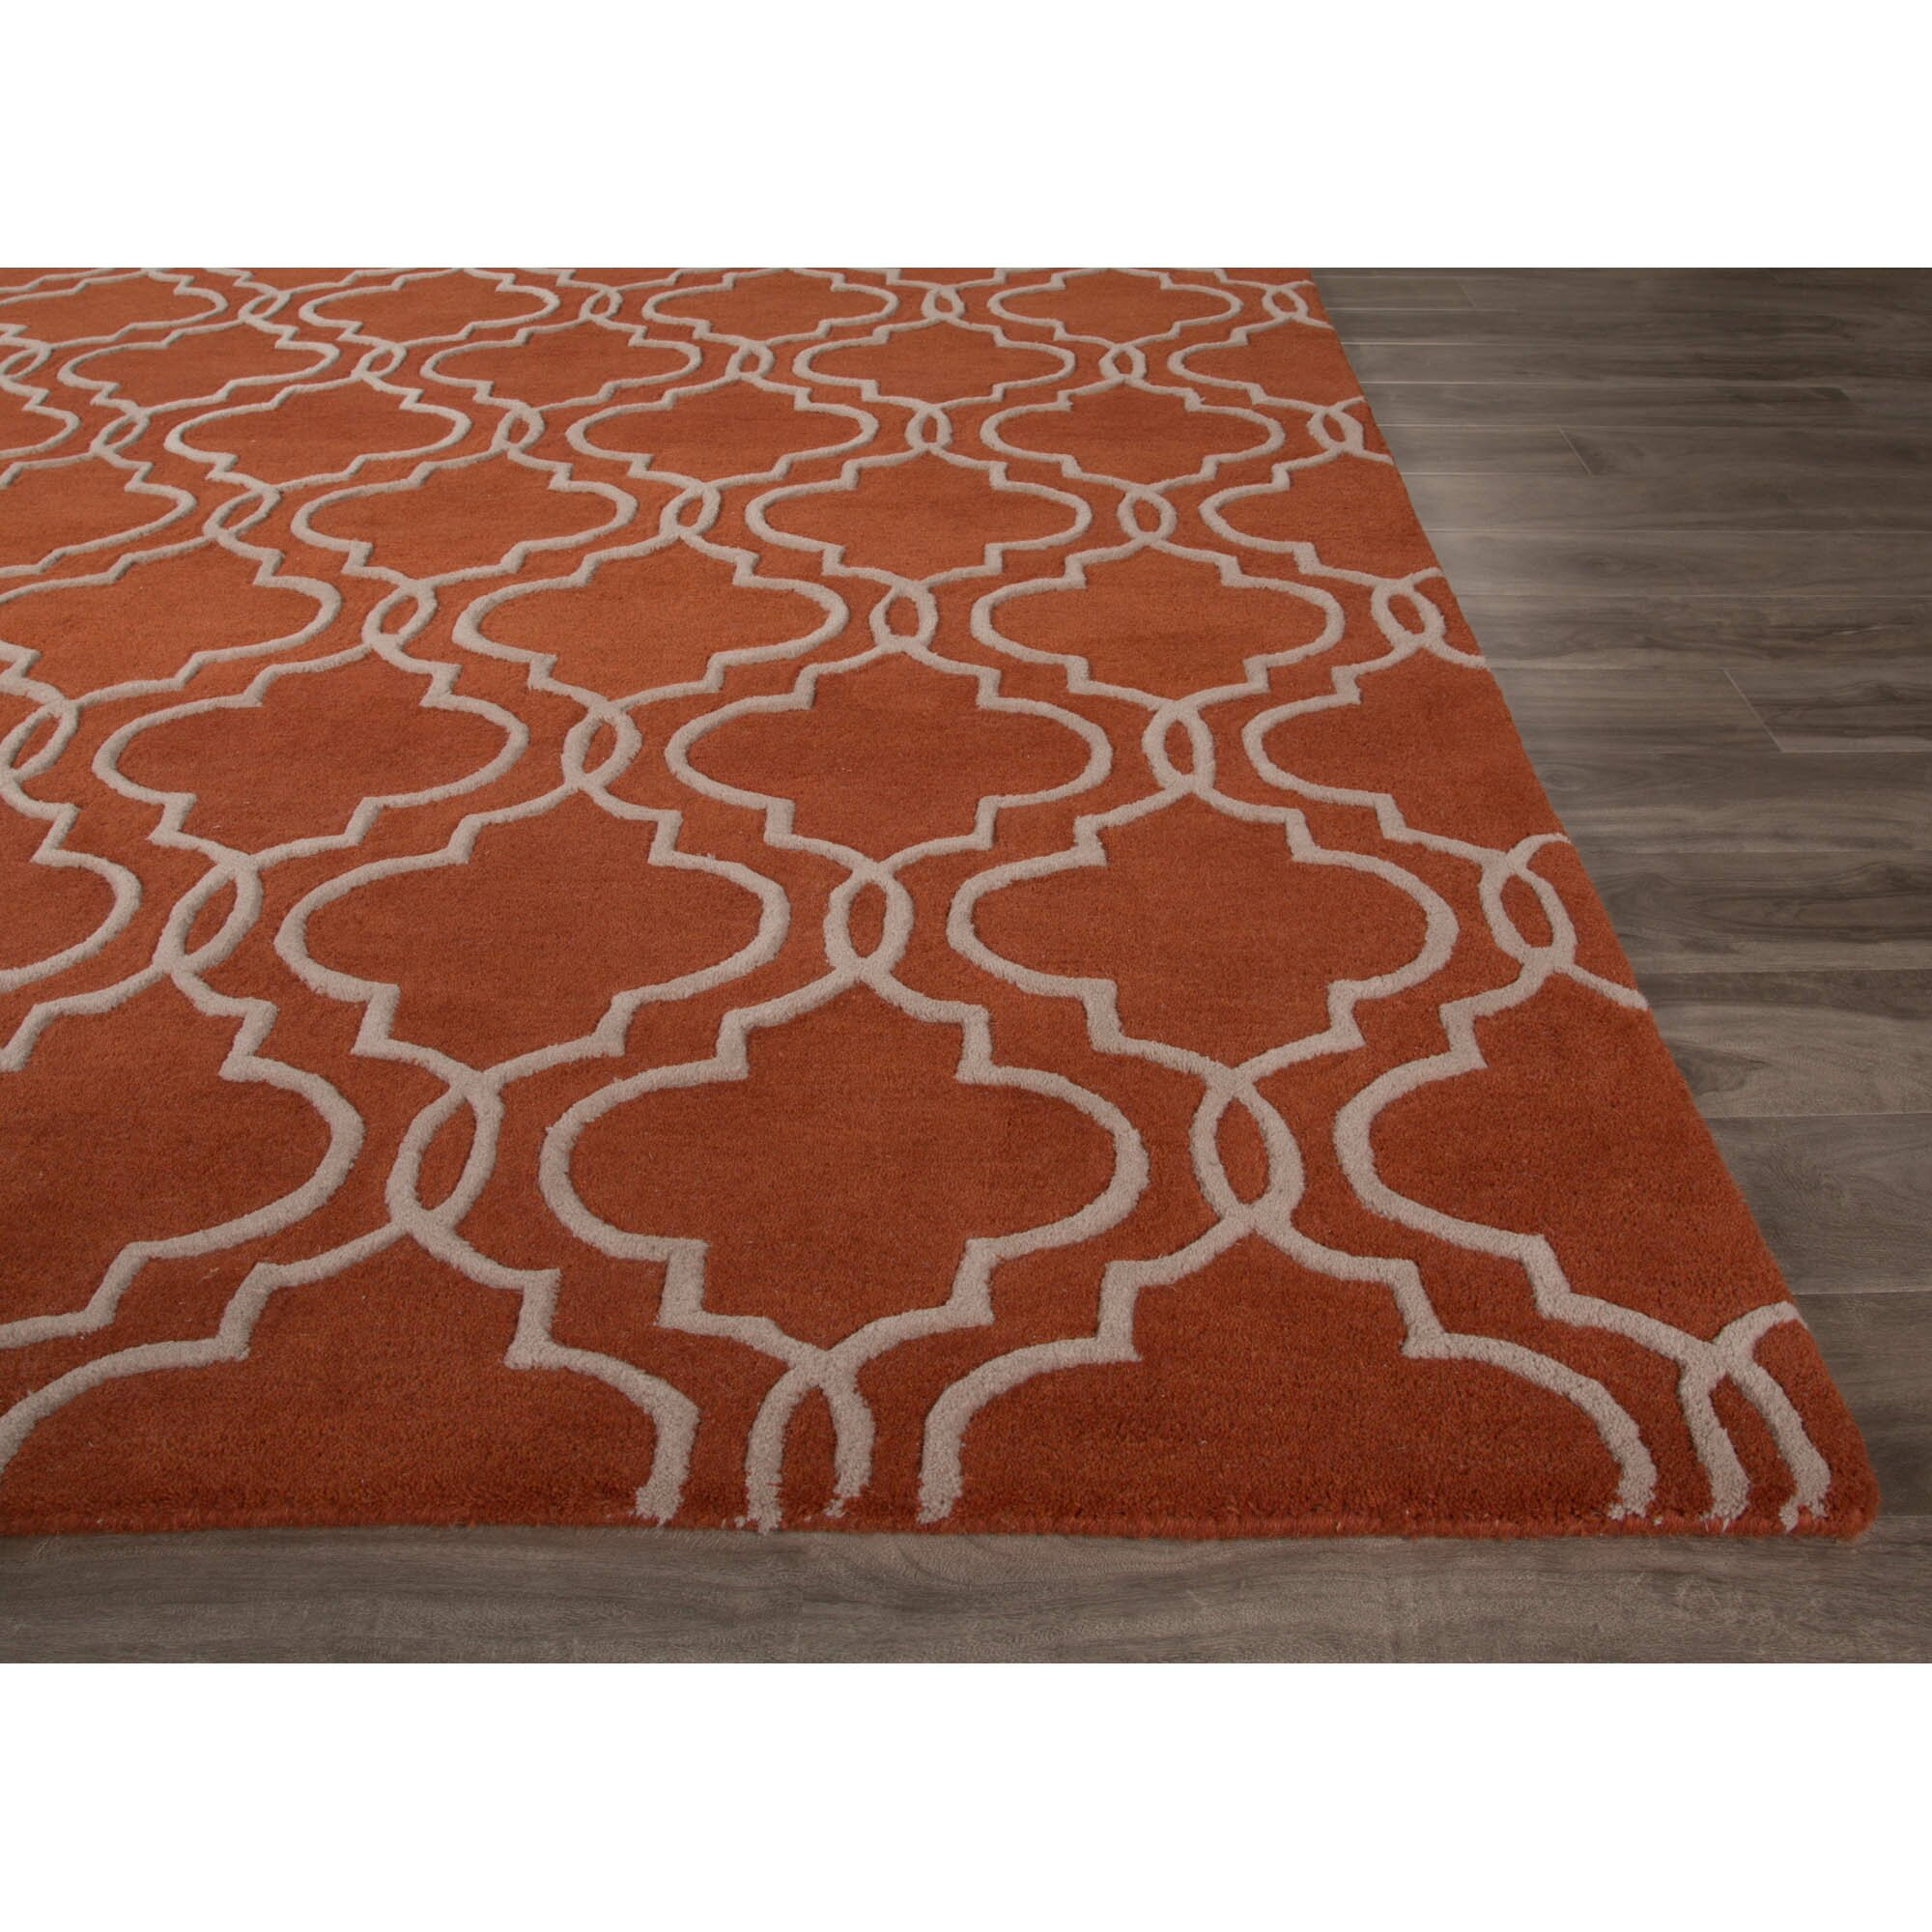 Jaipurliving lounge hand tufted orange ivory area rug for Throw rugs for lounge